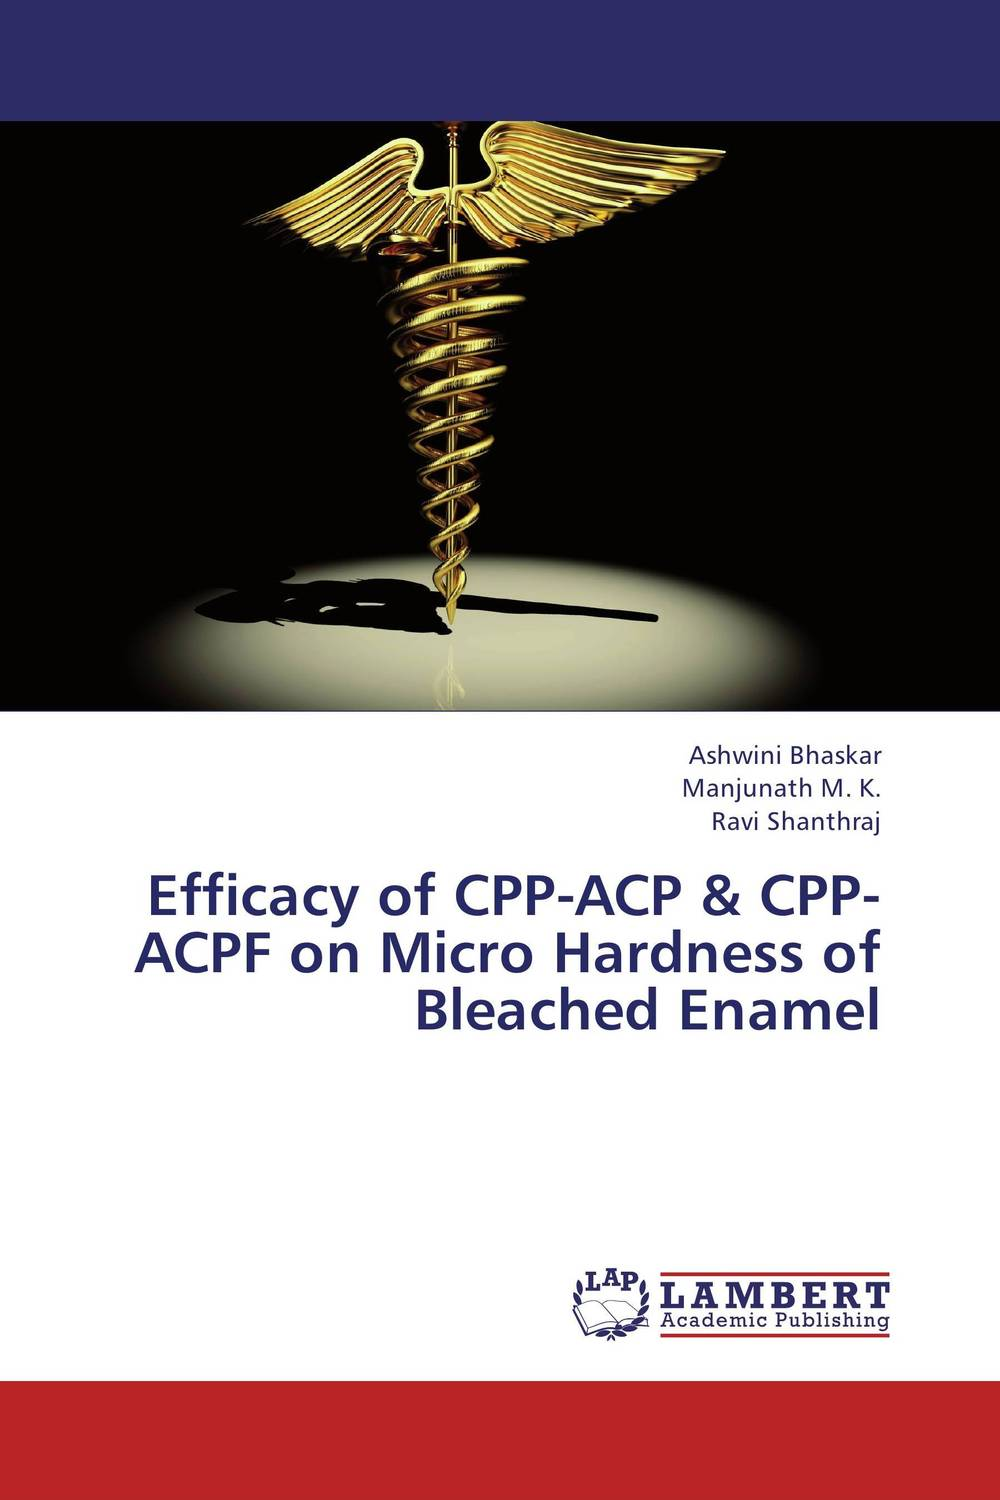 Efficacy of CPP-ACP & CPP-ACPF on Micro Hardness of Bleached Enamel efficacy of cpp acp